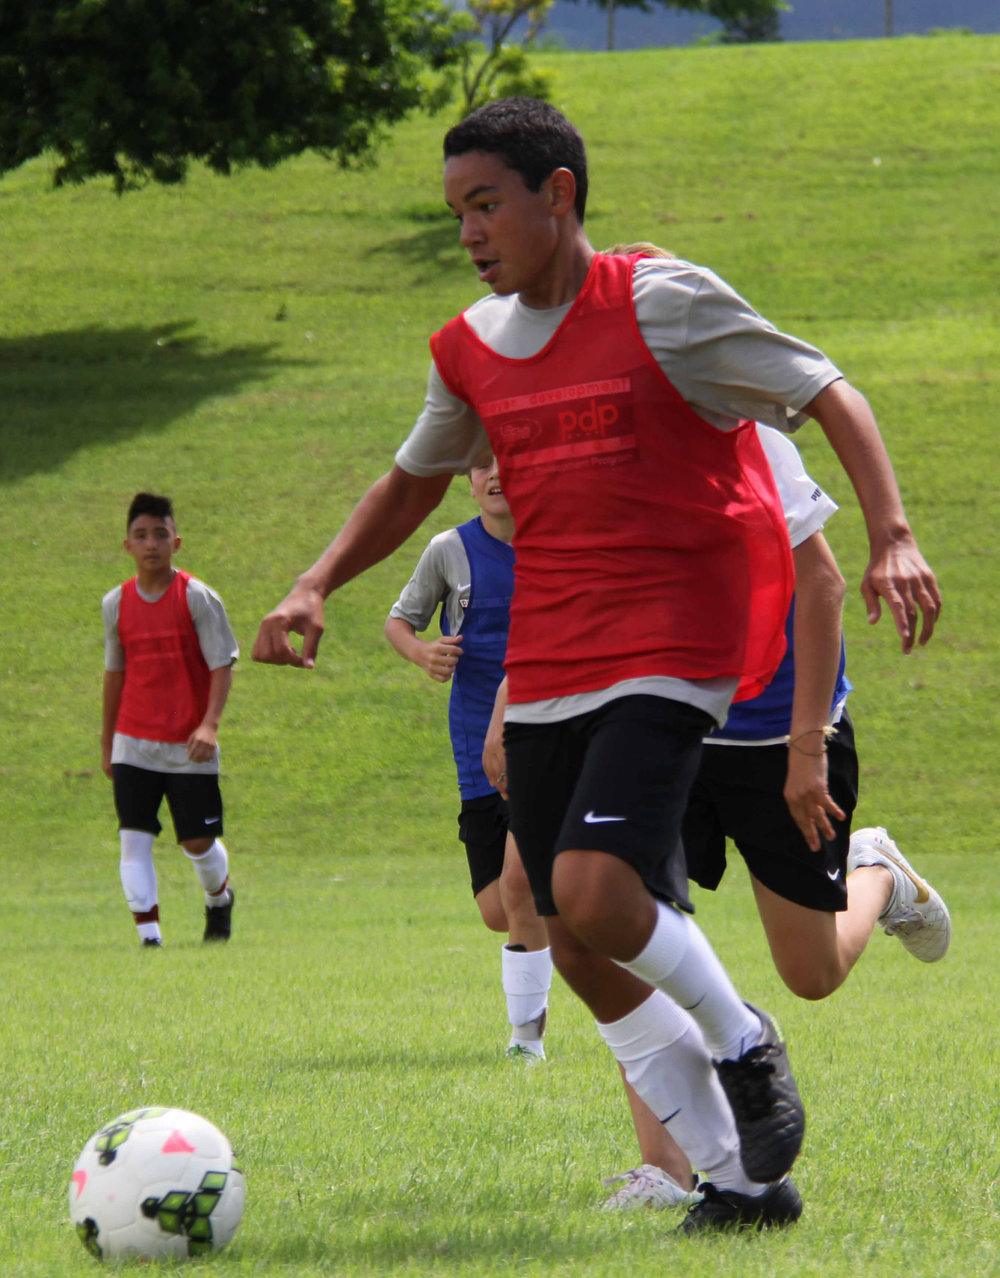 Buddy's son, Kahakuwaipolani Tolentino-Perry, competing in the innaugural US Club Soccer pdp — hosted by HSF.